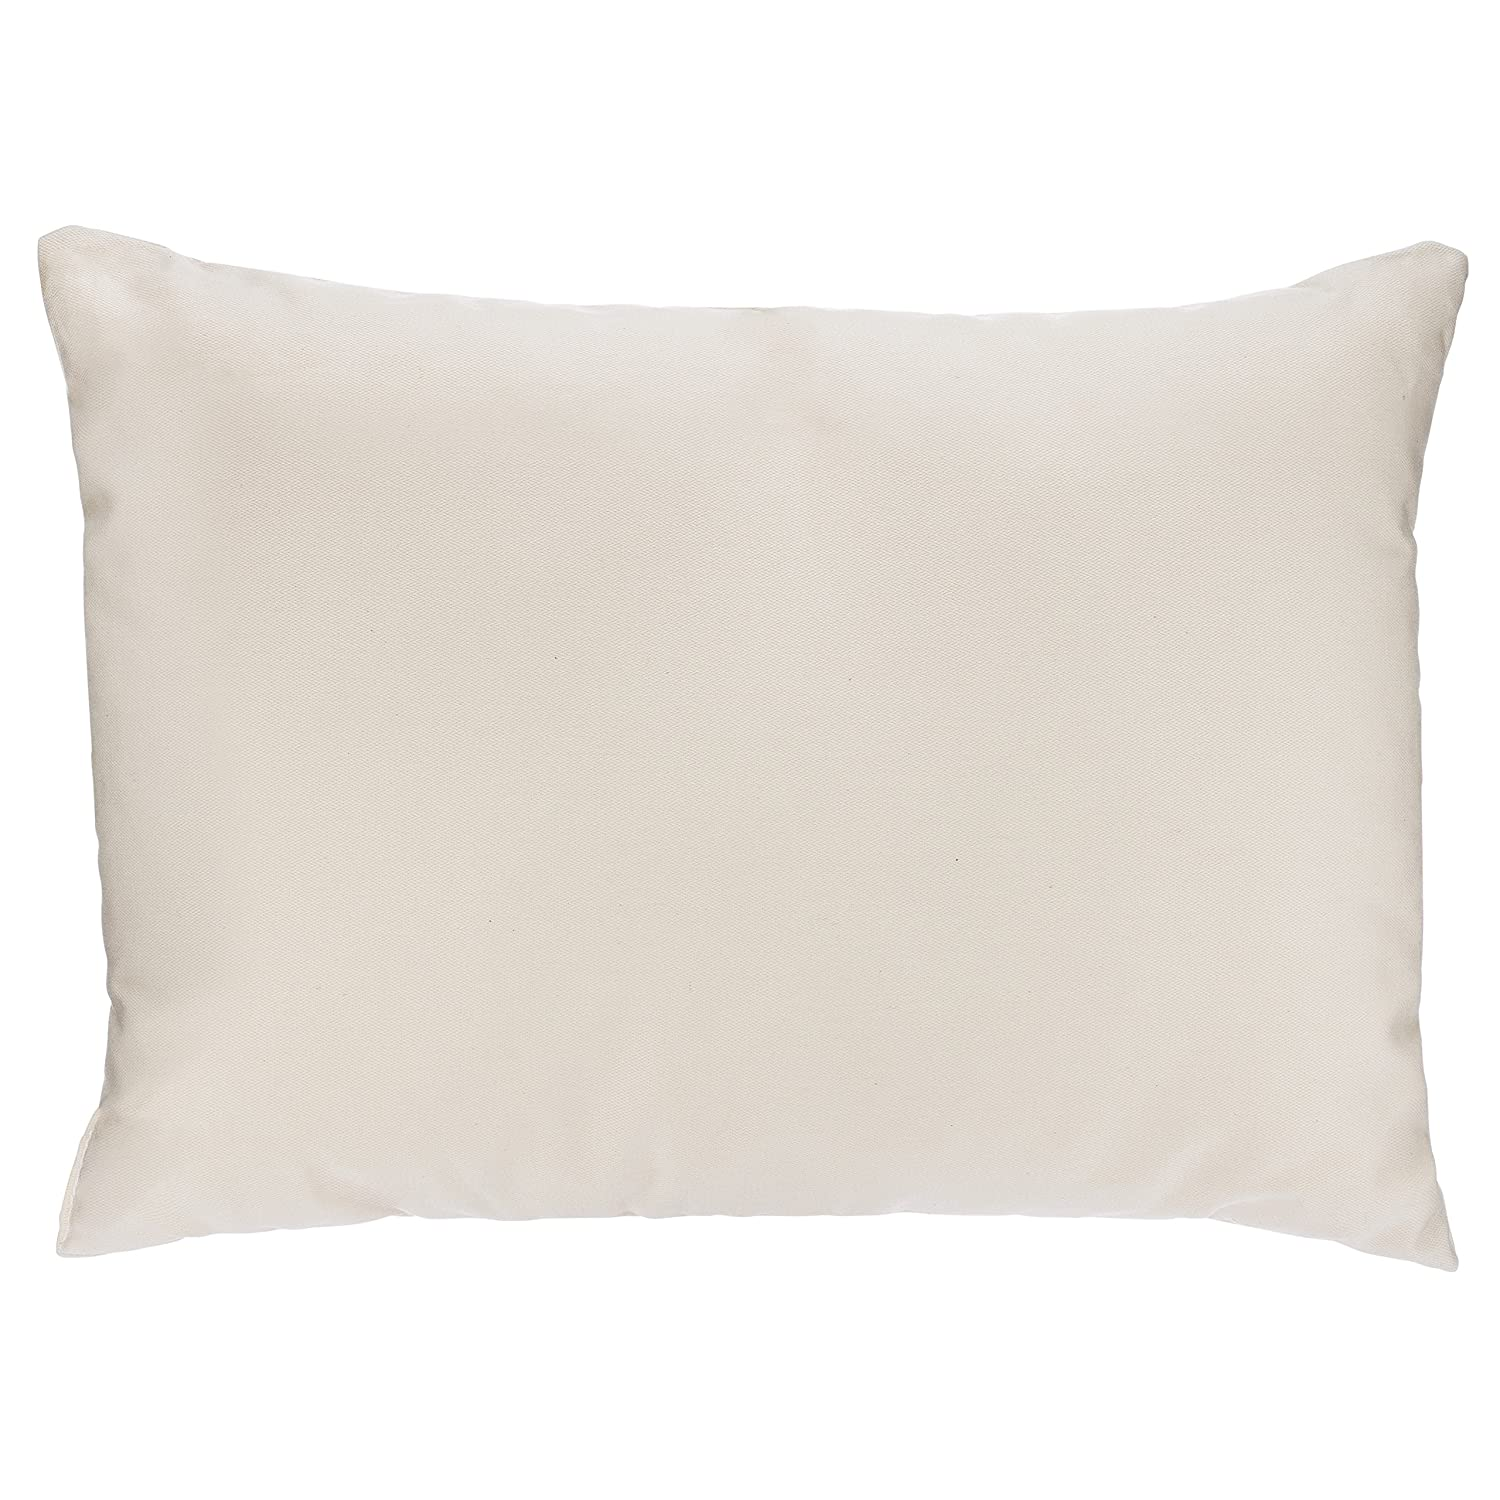 Adovely Toddler Pillow, Organic Cotton, Down-Like Fill, Ivory 13 X 18 ATP-08